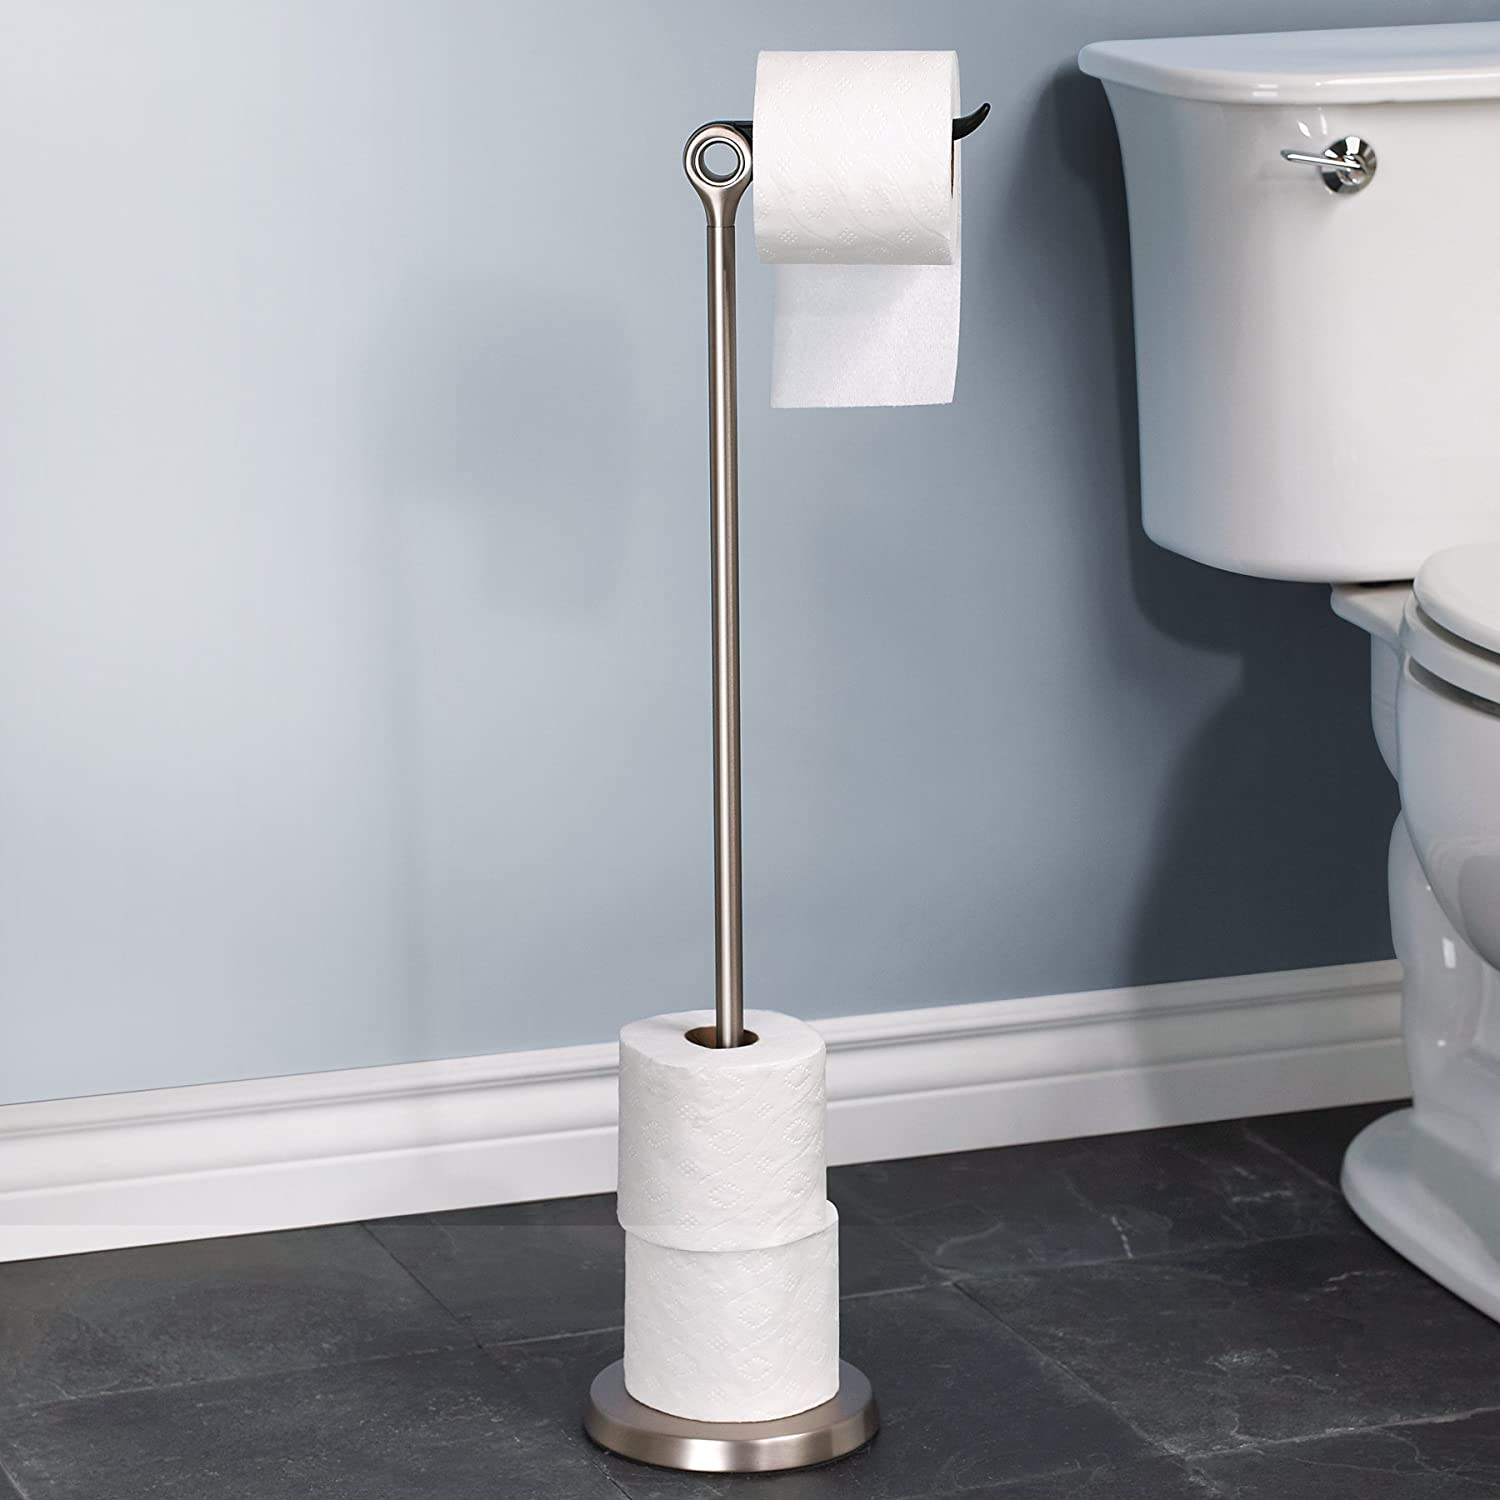 Amazon.com: Umbra Tucan Toilet Brushed Nickel Paper Stand With ...